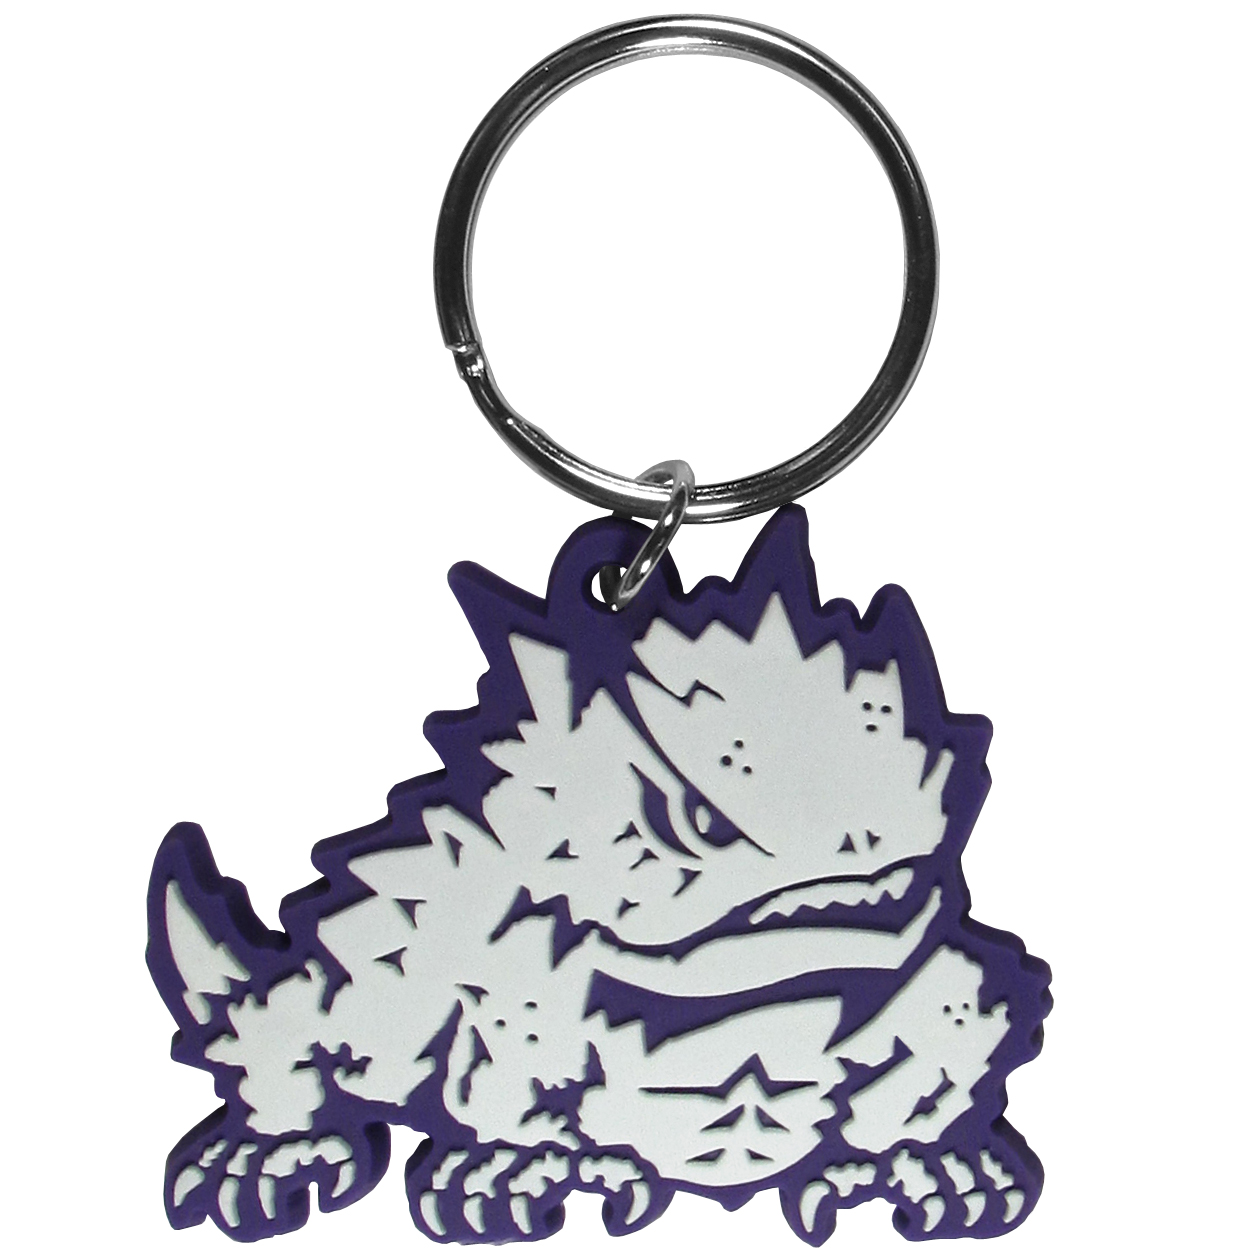 TCU Horned Frogs Flex Key Chain - Our fun, flexible TCU Horned Frogs key chains are made of a rubbery material that is layered to create a bright, textured logo.